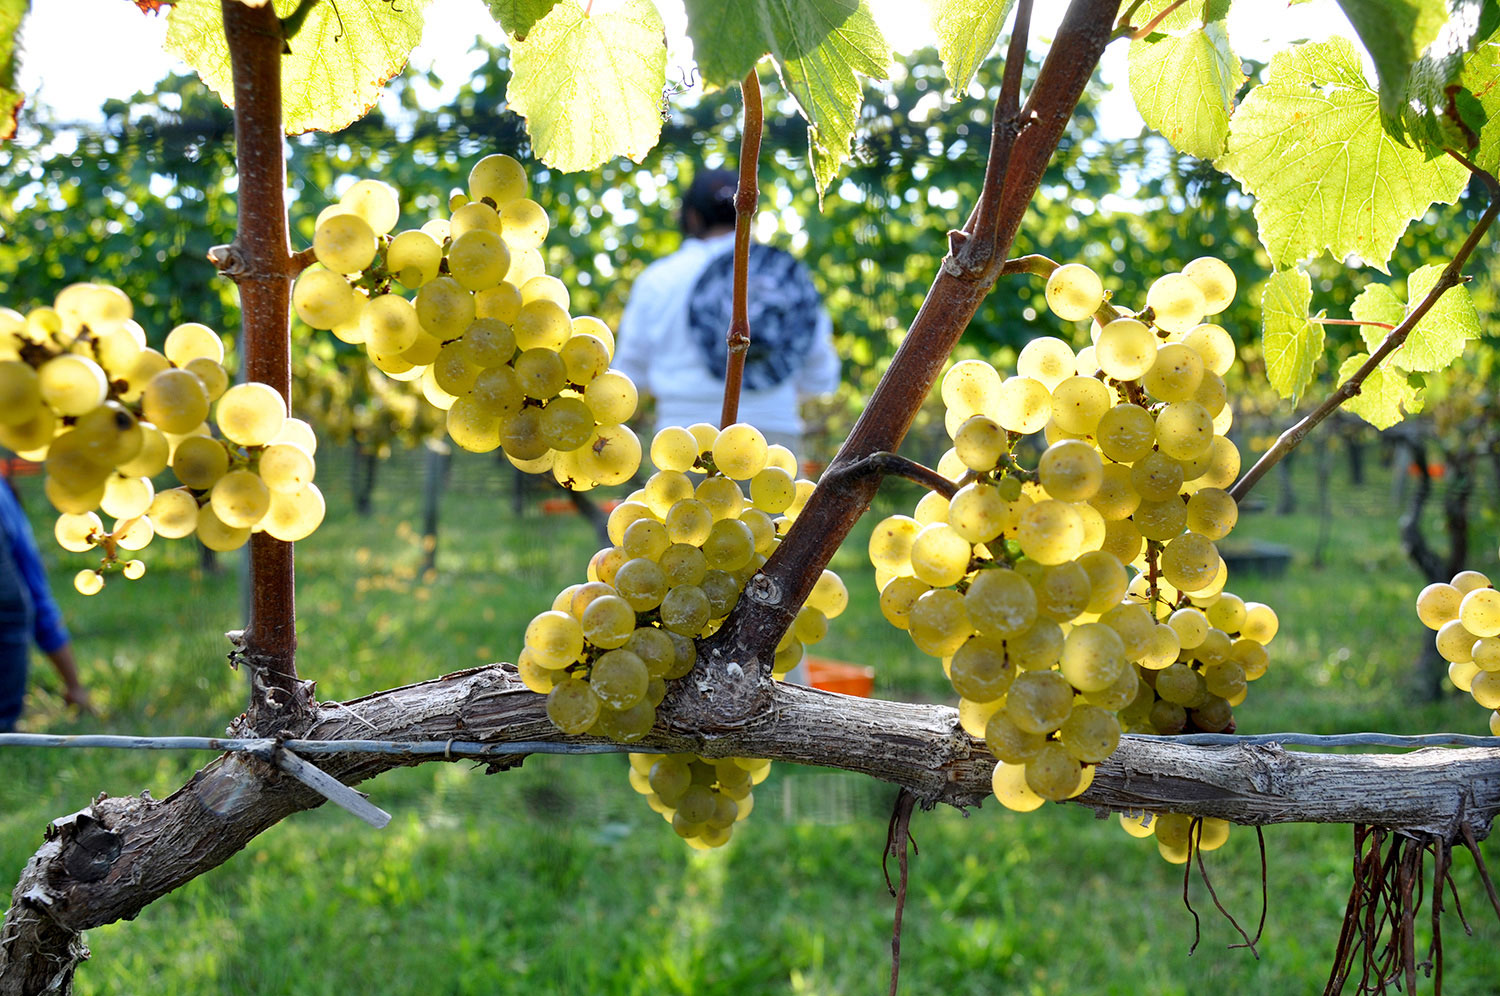 ripe Chardonnay grapes being picked